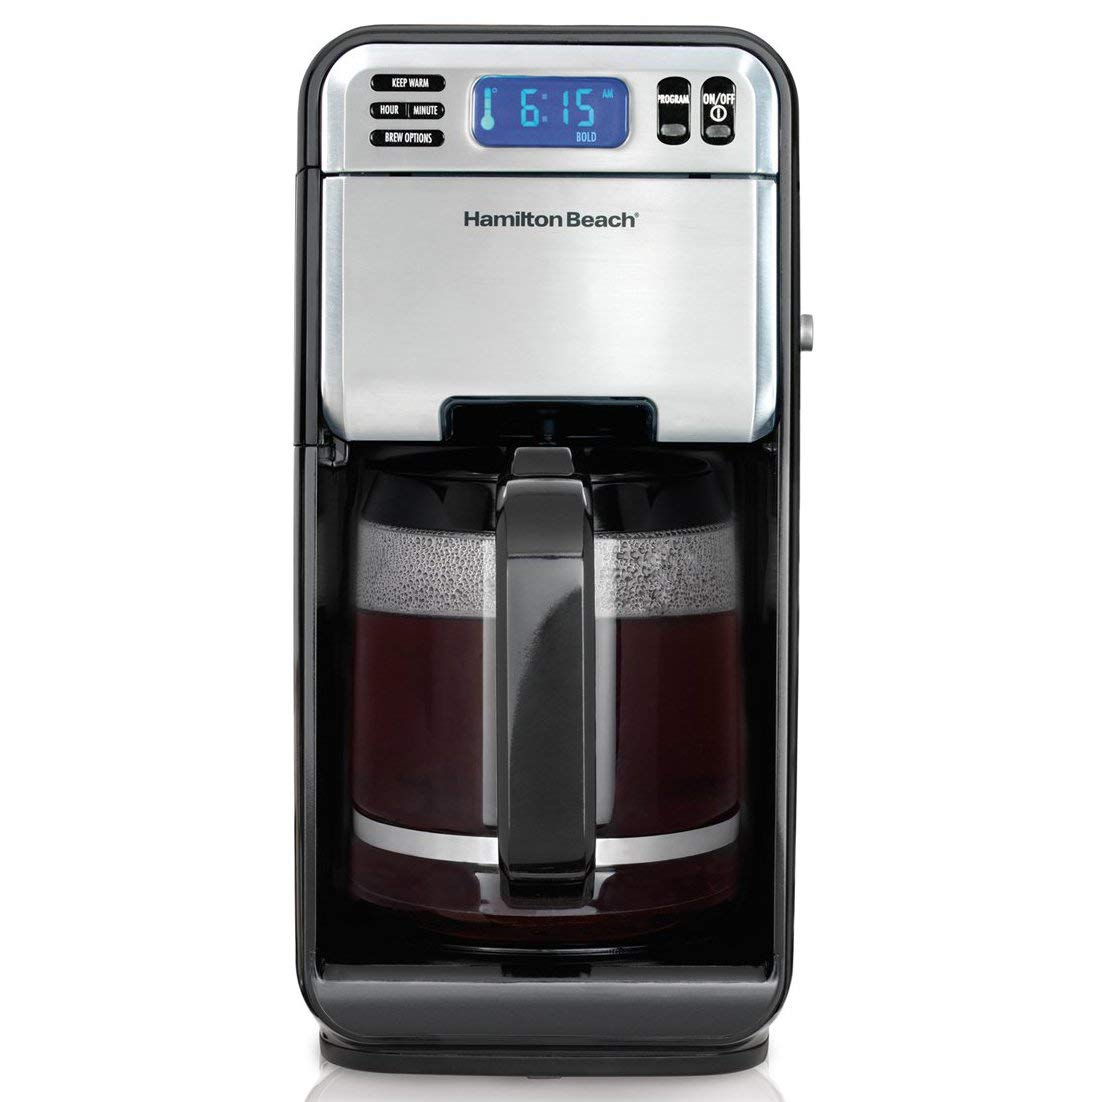 Hamilton Beach Automatic Coffeemaker with Permanent Filter and Electric Grinder